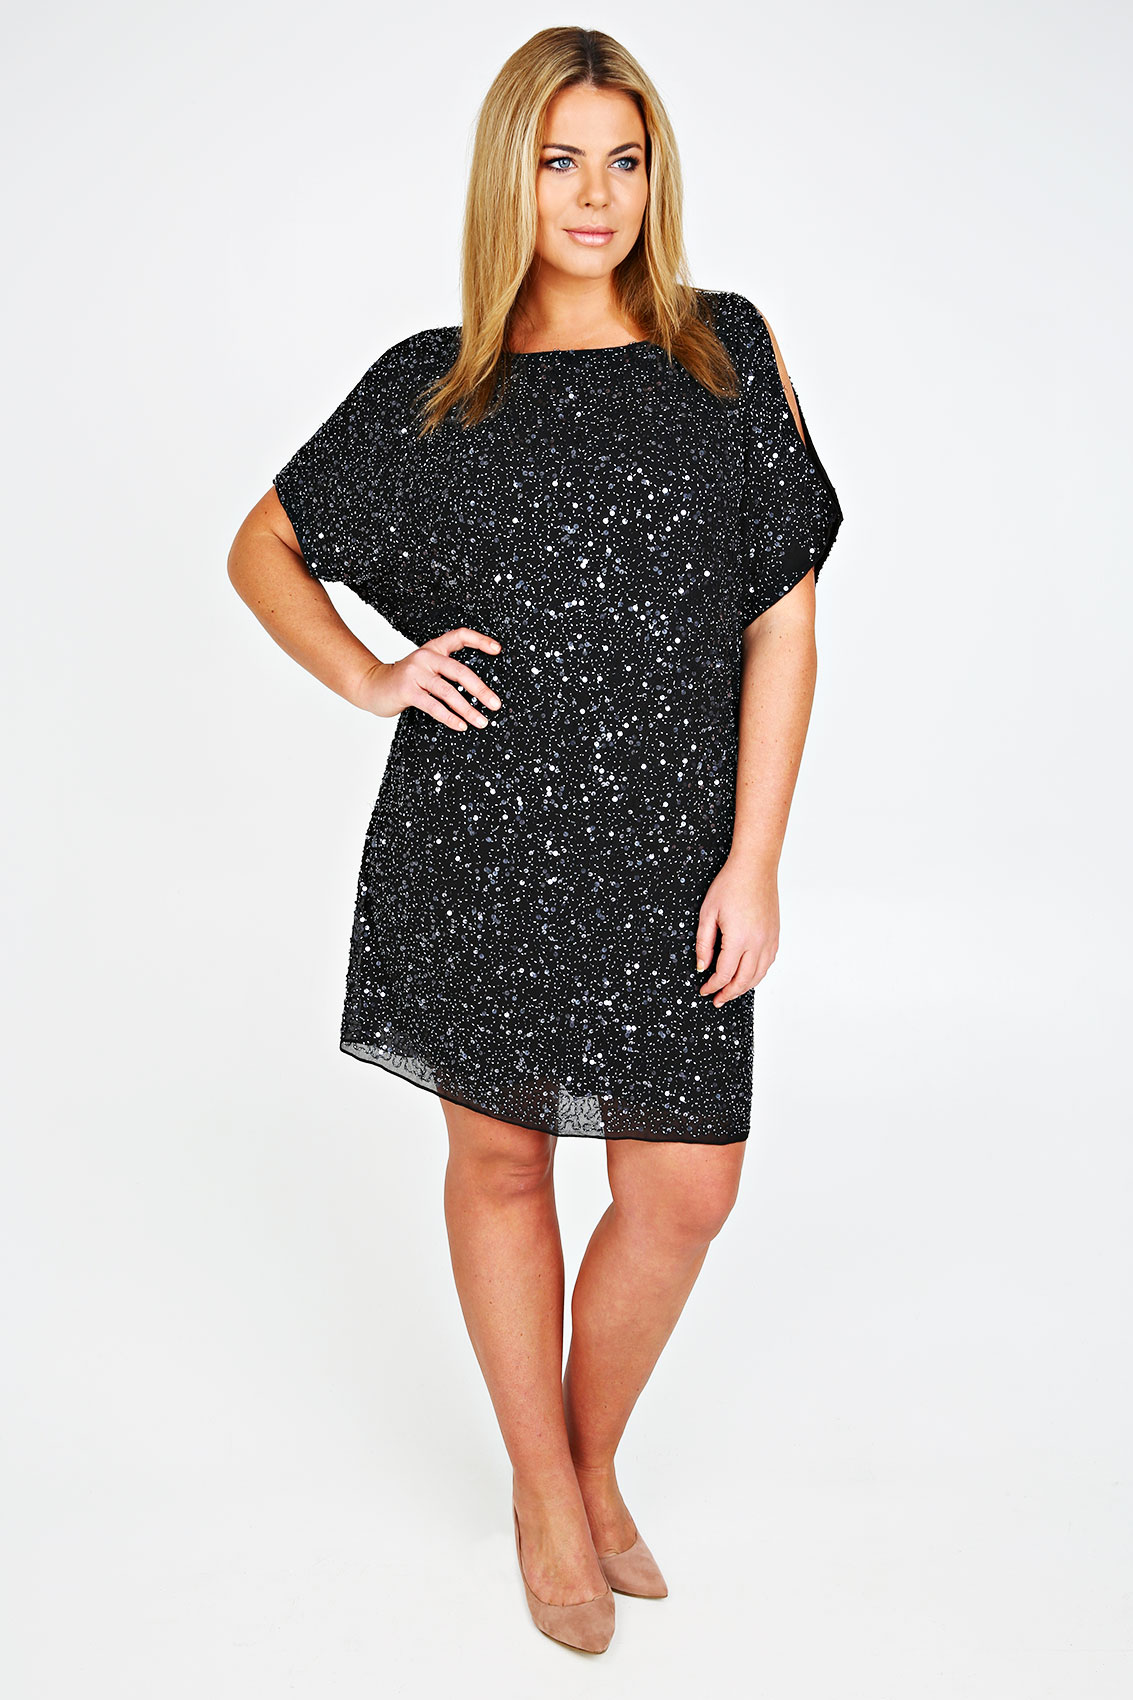 Shop Dillard's selection of women's plus-size cocktail and party dresses.